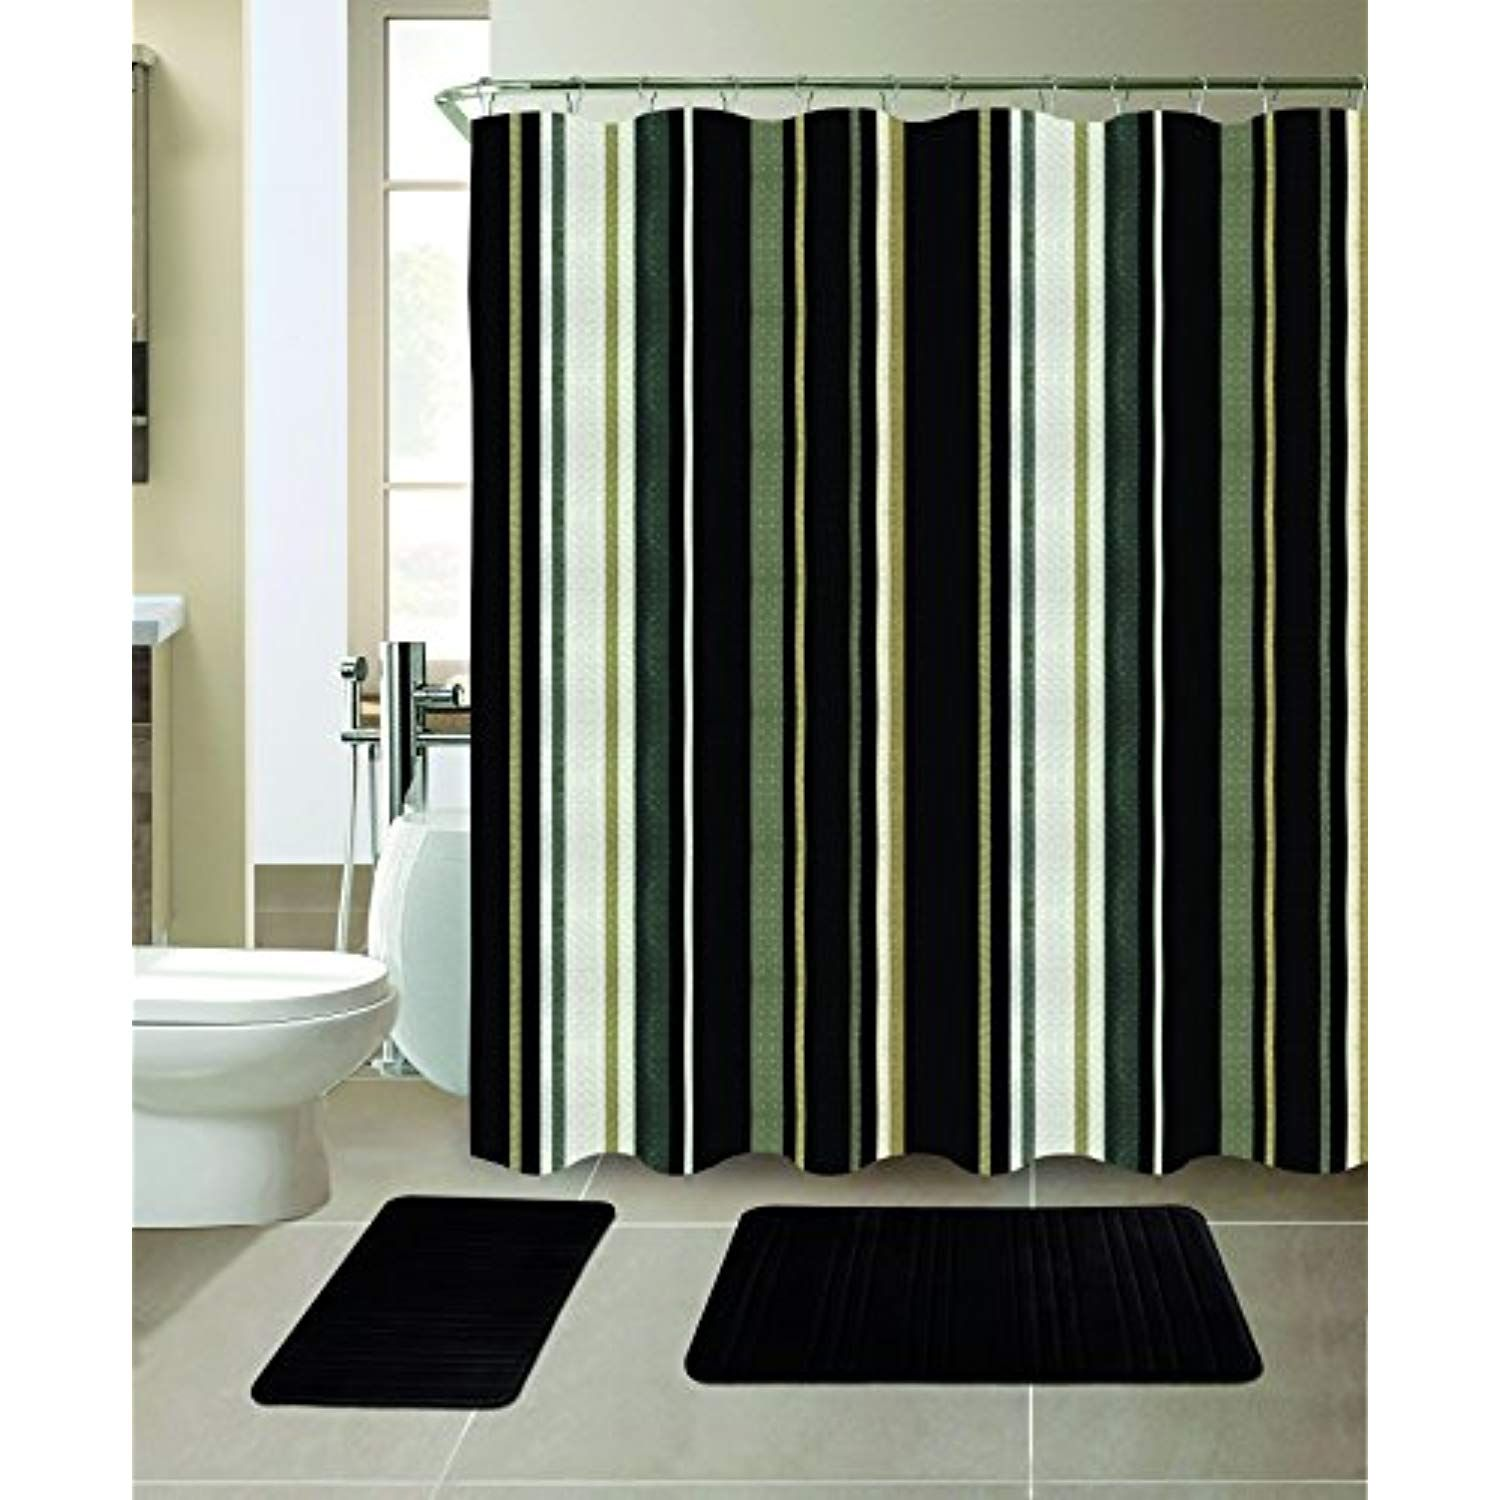 All American Collection New 15 Piece Bathroom Mat Set Memory Foam With Matching Shower With Images Bathroom Shower Curtains Bathroom Wall Colors Bathroom Vanities For Sale